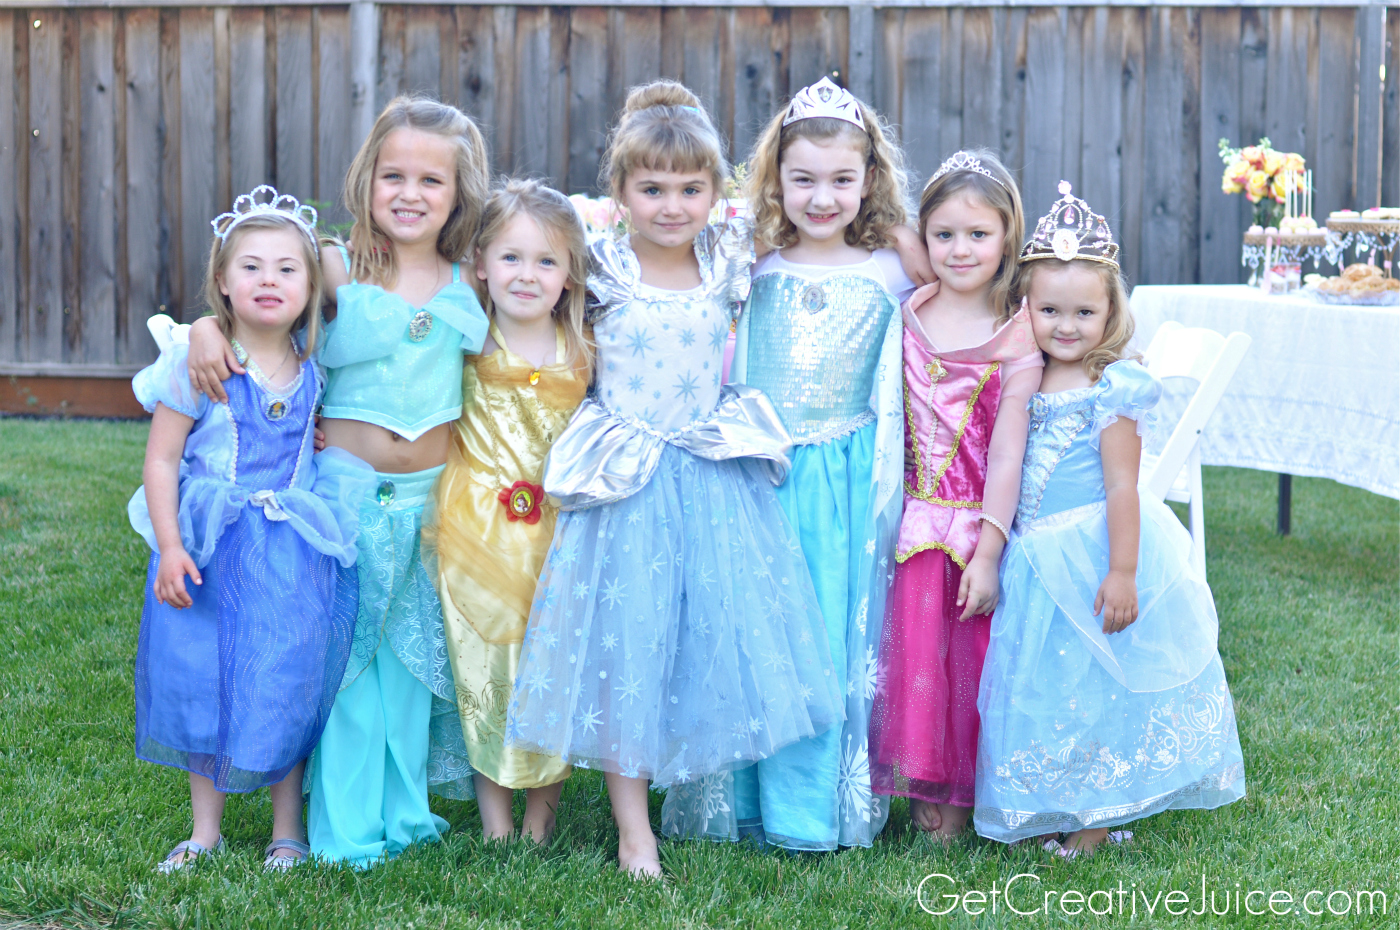 Disney Princess Party with Belle - Part 2 - Creative Juice